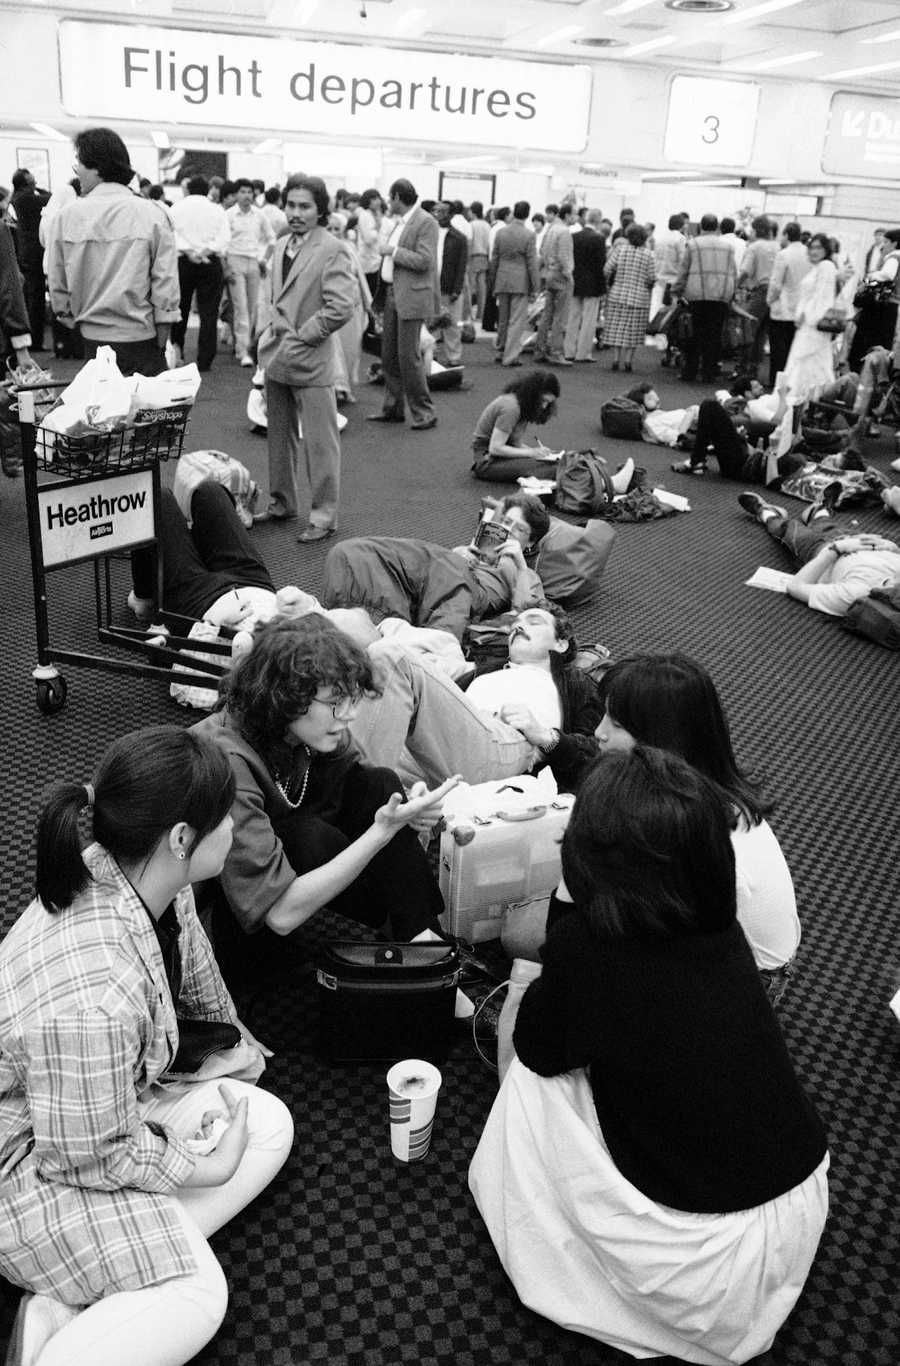 Passengers litter the floor of the departure lounge of London's Heathrow Airport on Friday, Sept. 27, 1985, as flight to the United States were delayed because of Hurricane Gloria battering the US east coast. Some flights face delays of four to six hours, while others were being diverted to other destinations ranging from Florida to Montreal.